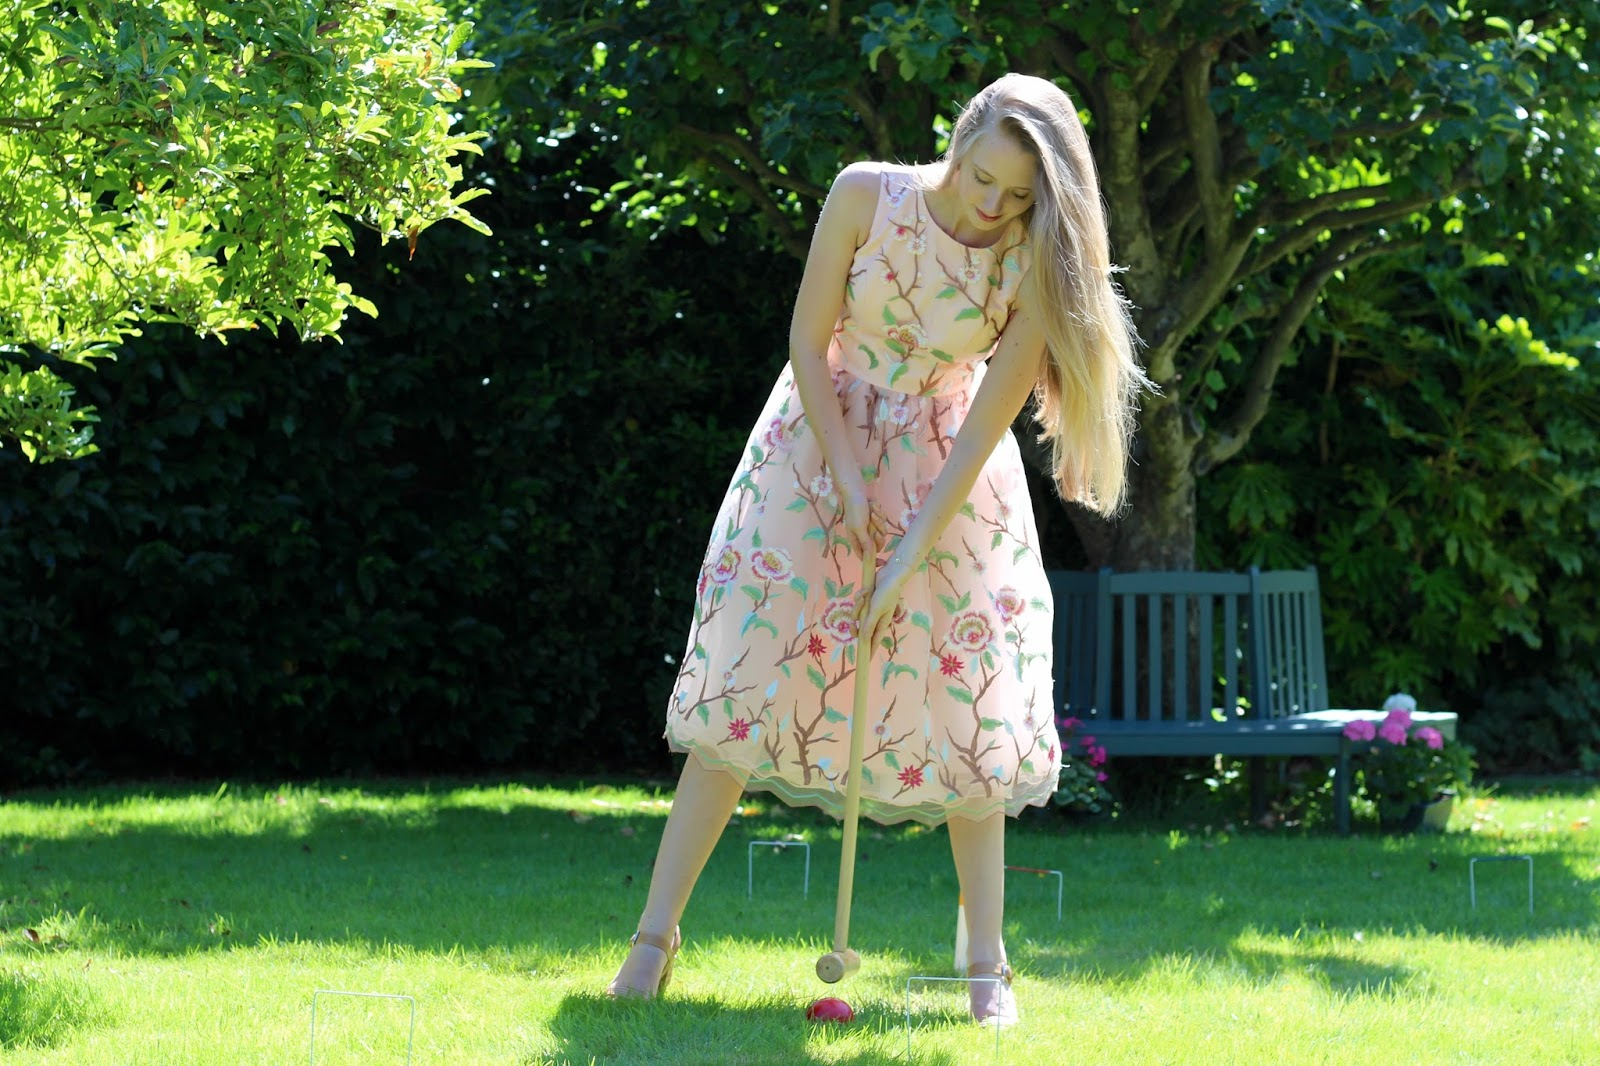 Game of croquet in Chi Chi dress